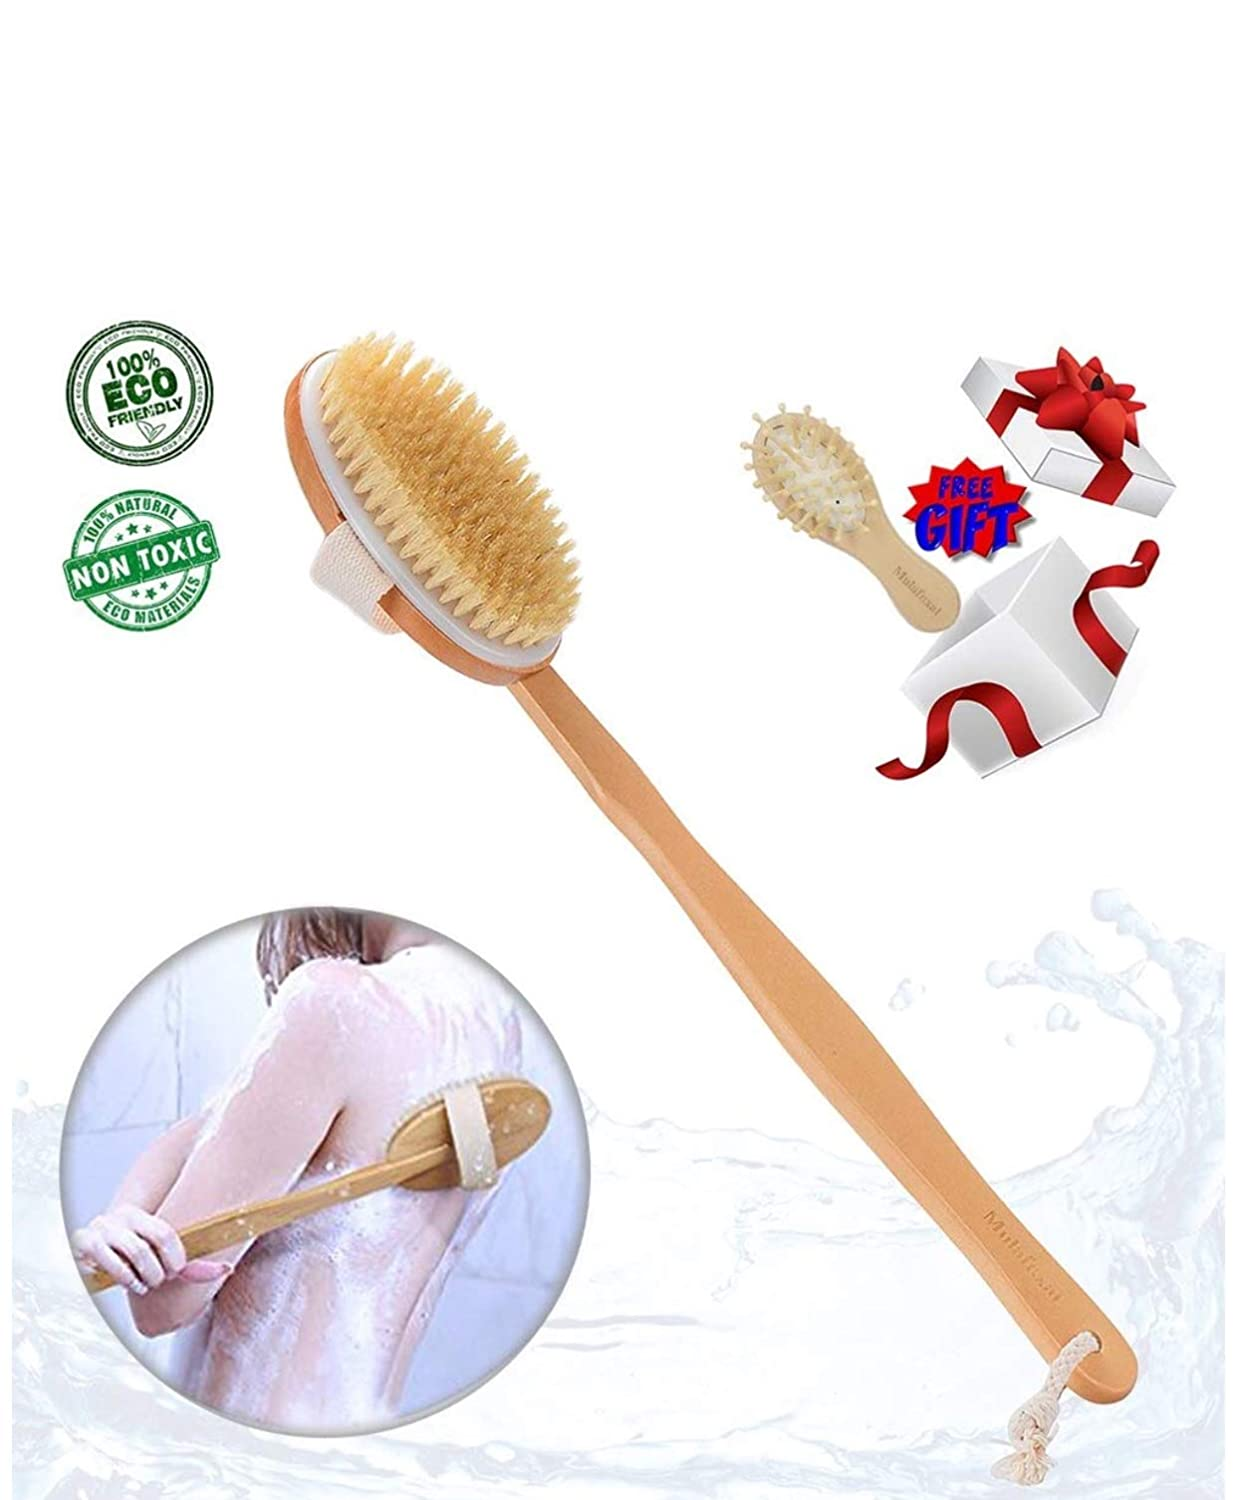 Dry Brushing Body Brush Skin Brush Natural Bristles Back Scrubber Exfoliating Massager Shower Dry/Wet Bath Brush For Men/Women Long Relax Wood Handle -Cellulite, Circulation, Skin Beauty Healthy